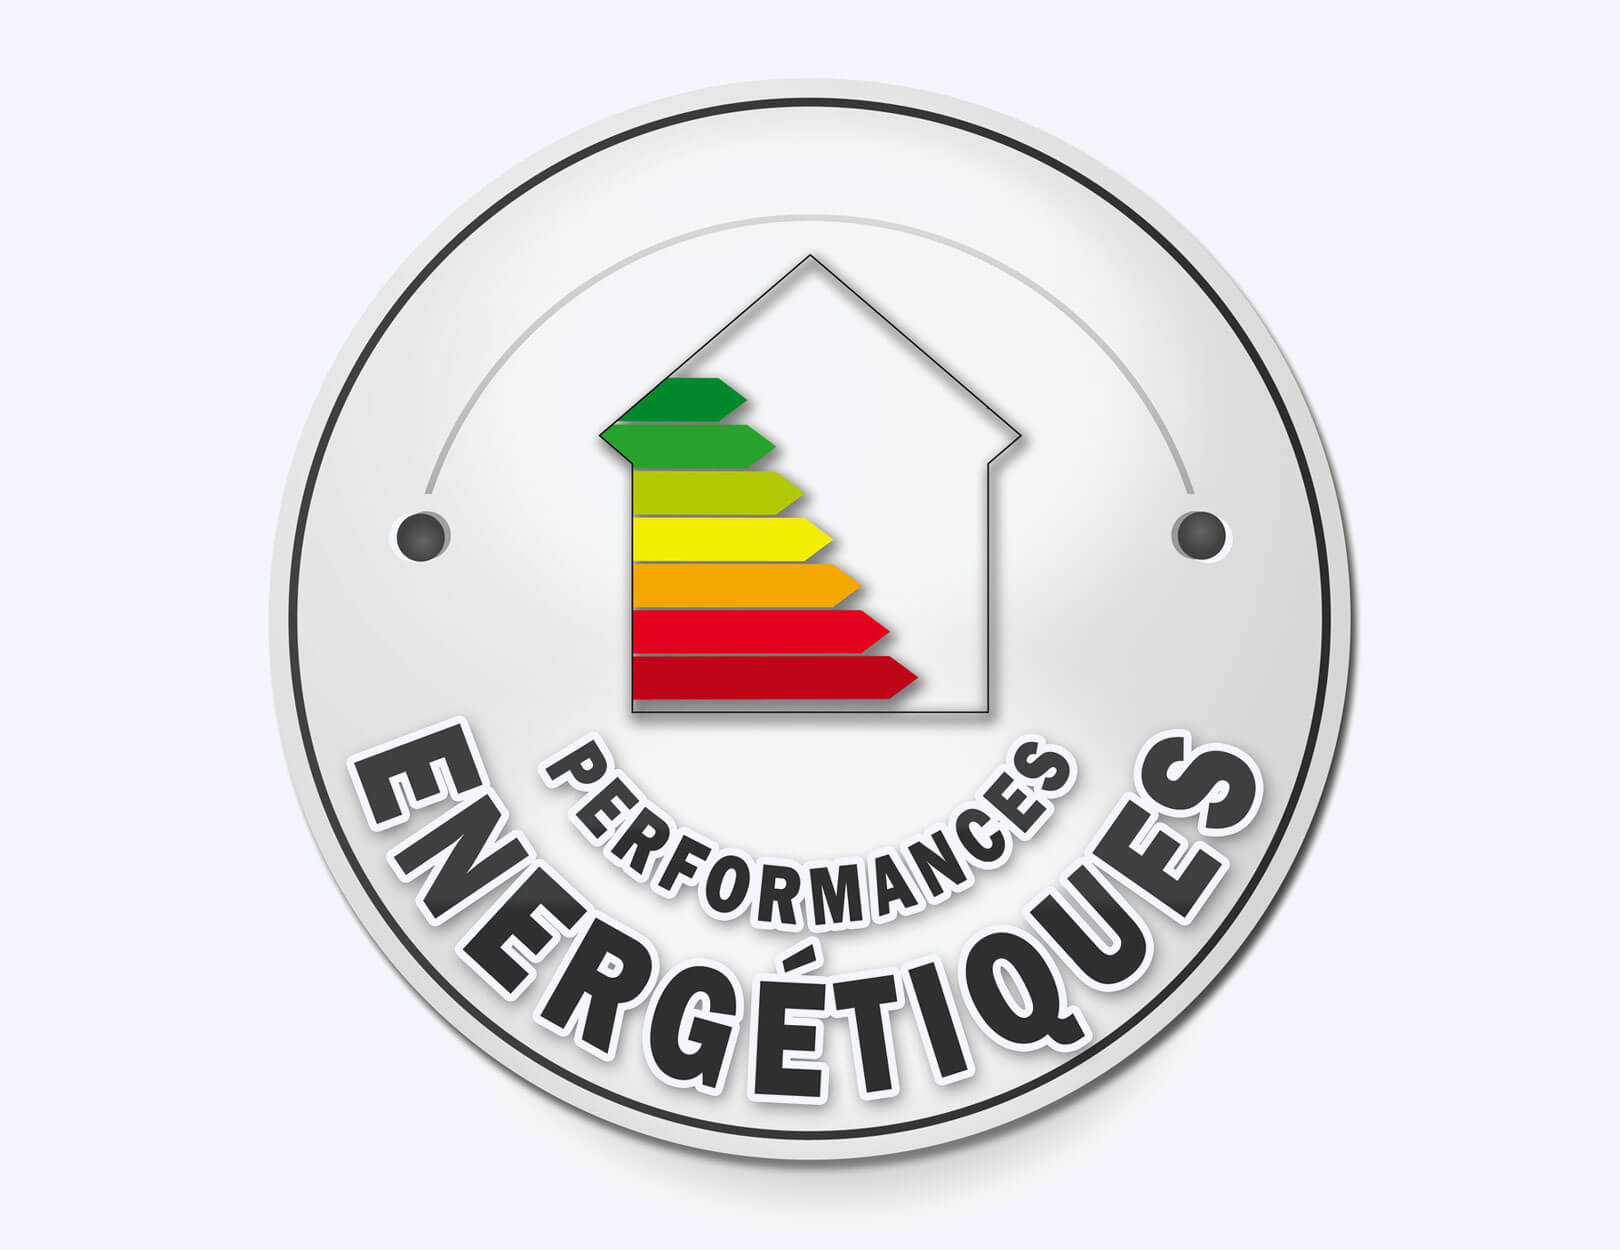 Diagnostic performance énergétique